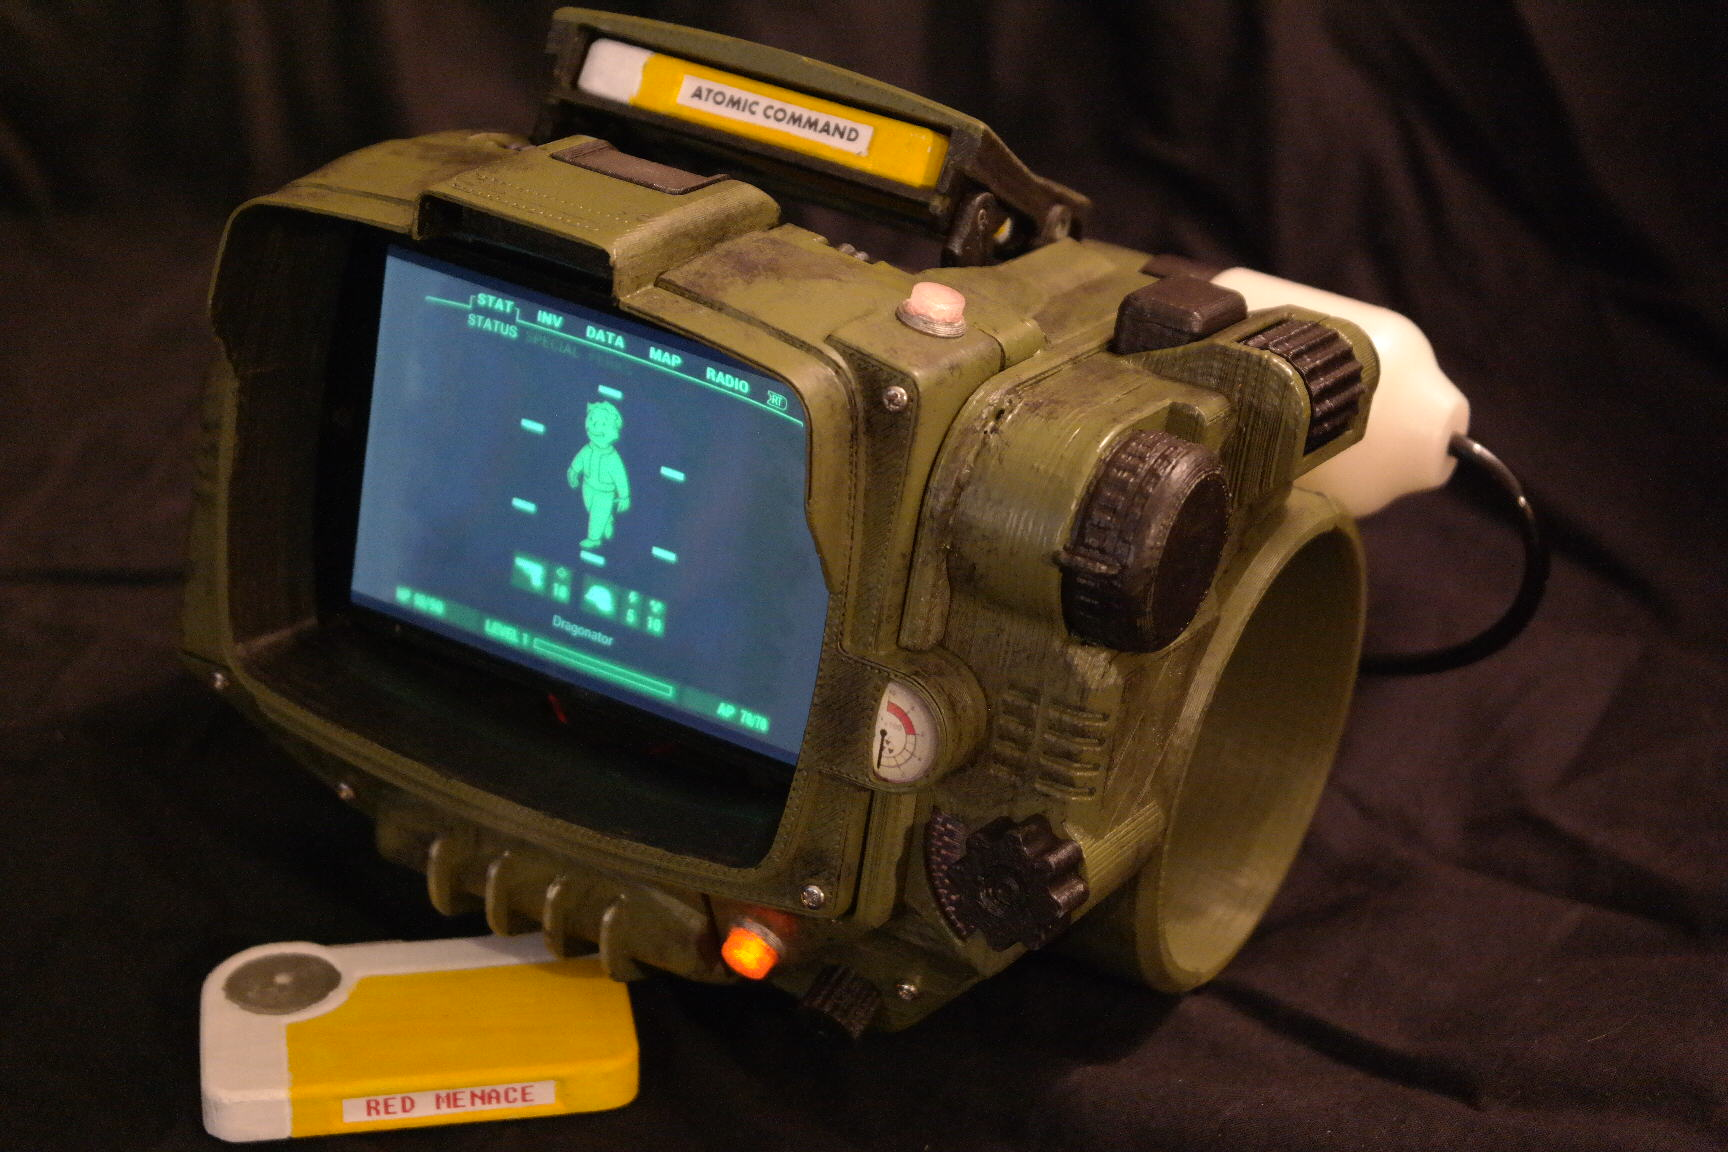 cFotNarKxSAM 3077.JPG Couldnt Get A Pip Boy Collectors Edition? Now You Can Print One